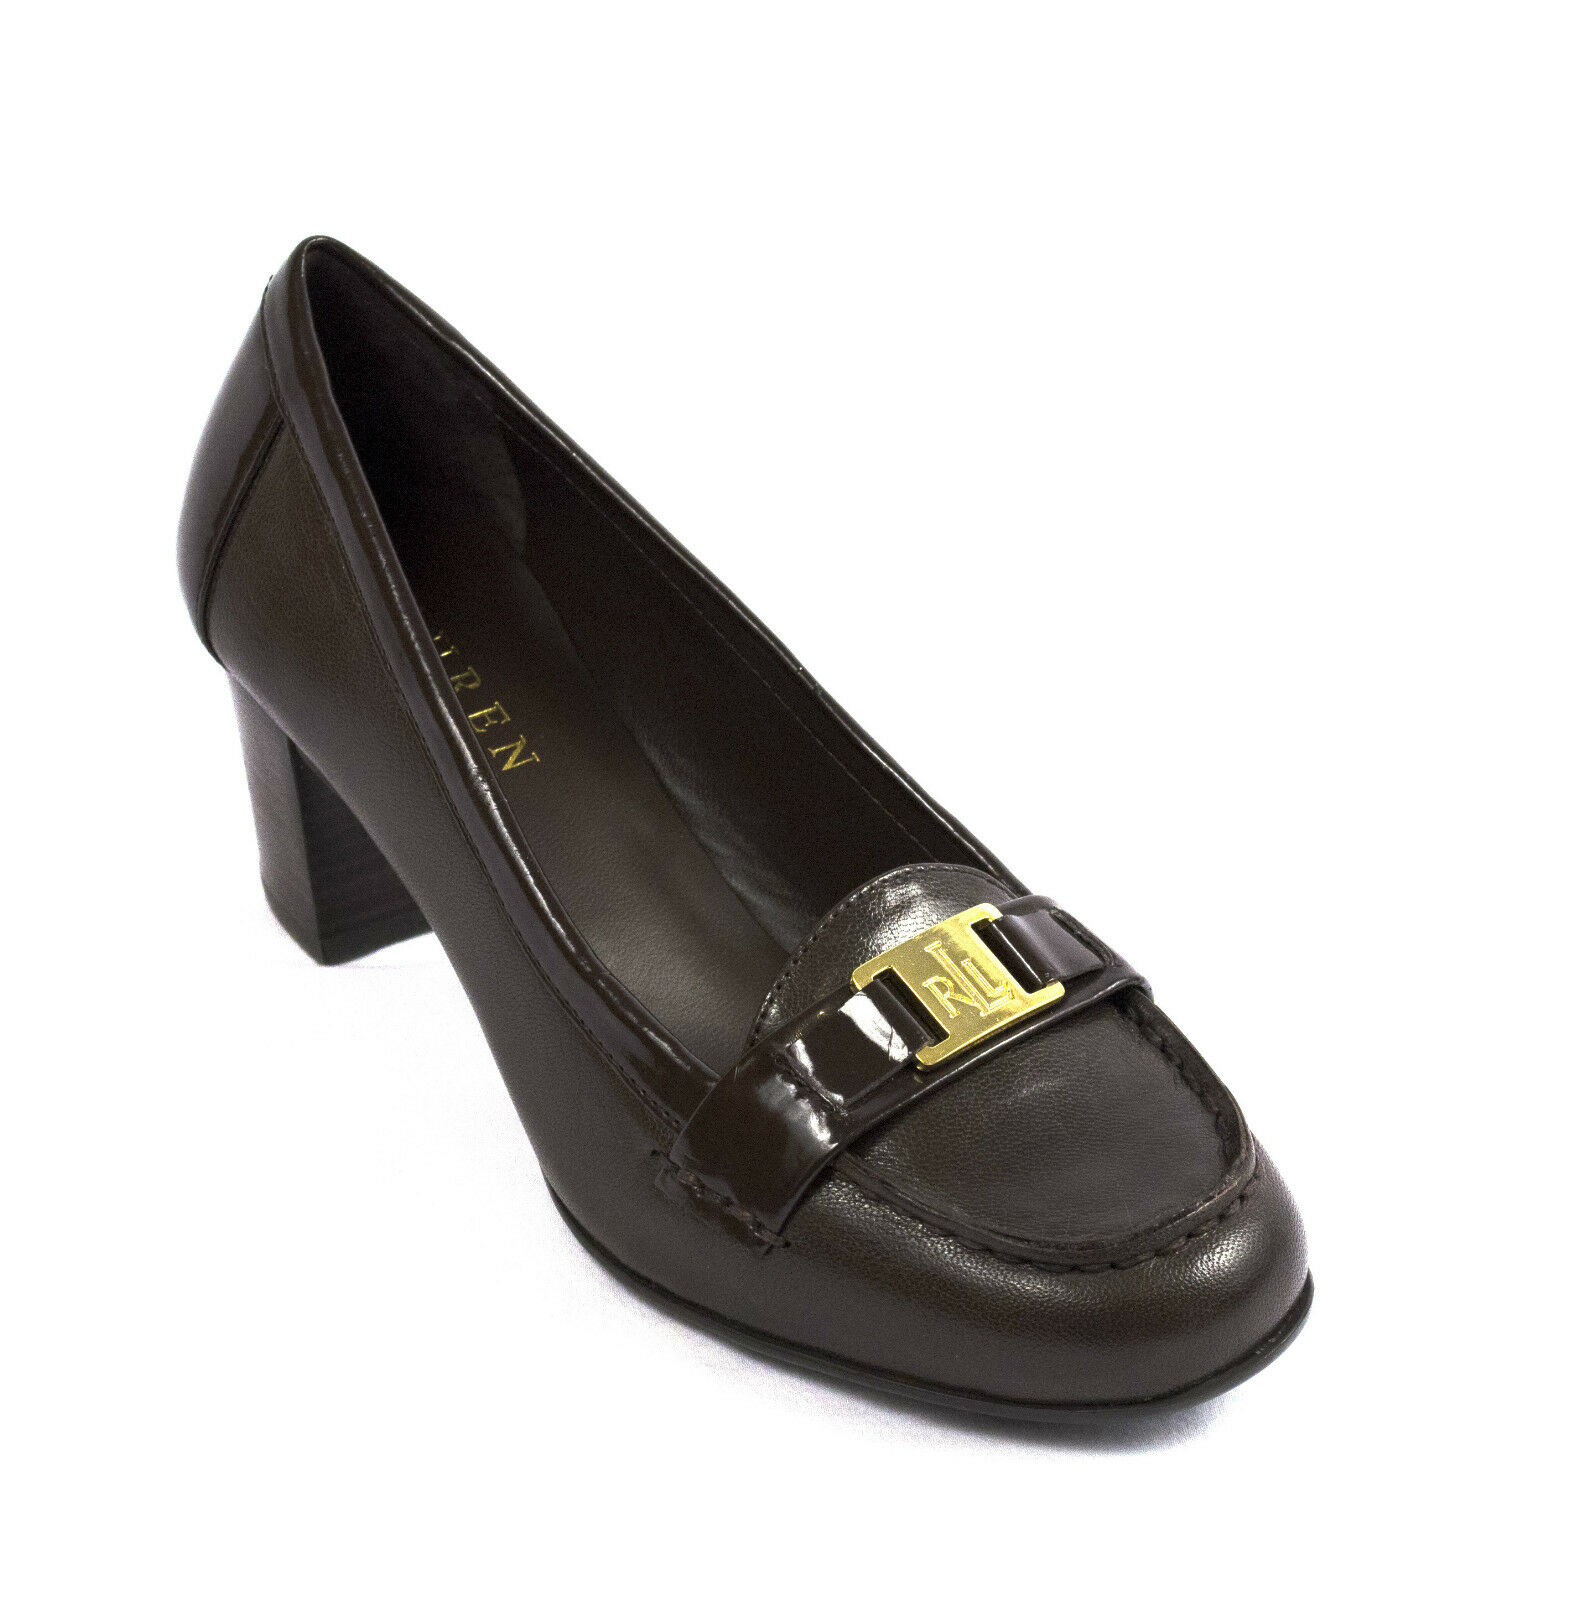 RALPH LAUREN TATUM DARK BROWN WOMENS LOGO SLIP ON SHOES MULTI SIZES